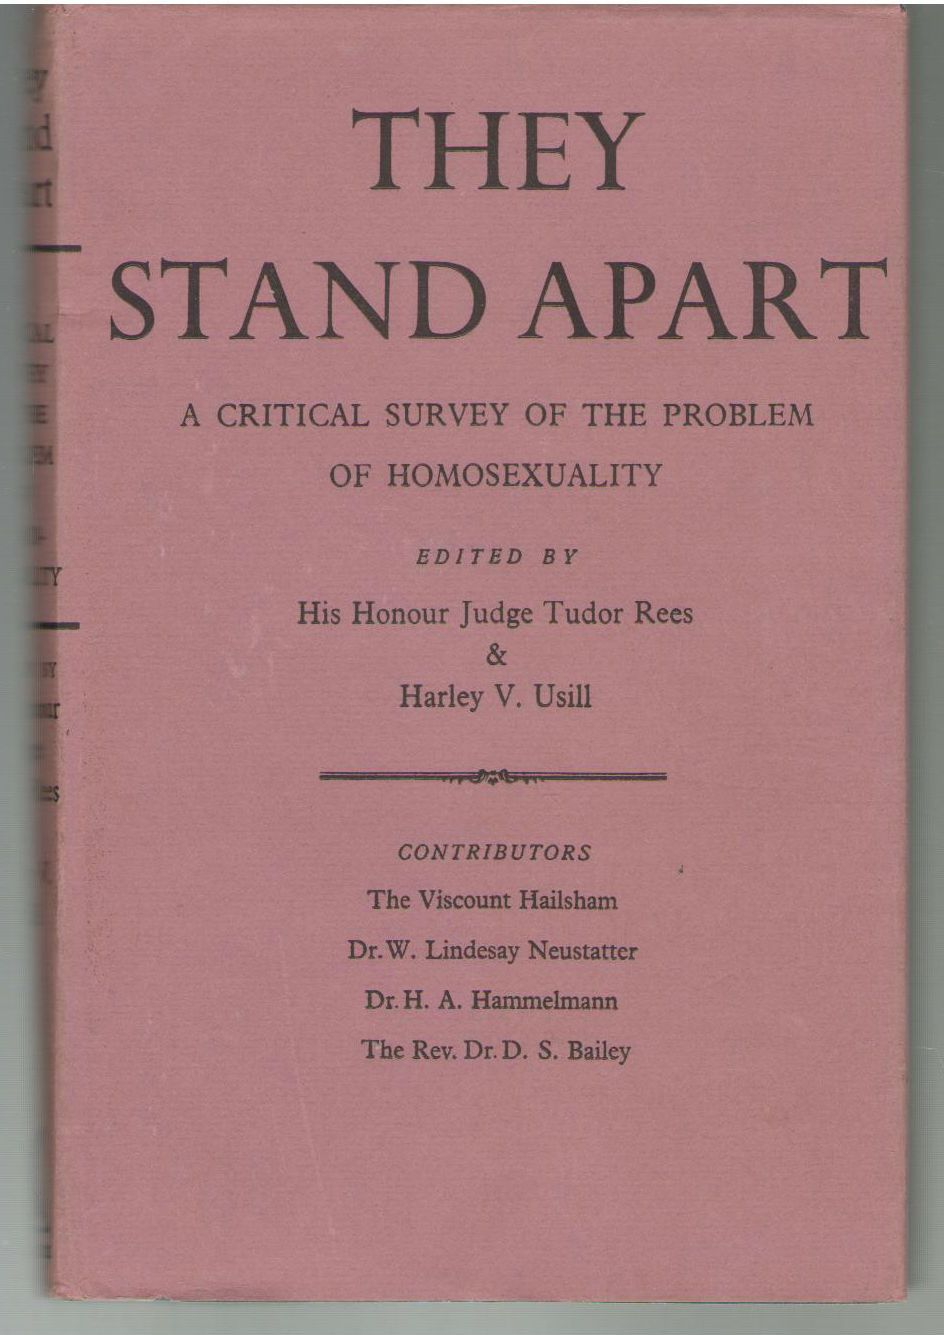 They Stand Apart: A Critical Survey of the Problems of Homosexuality